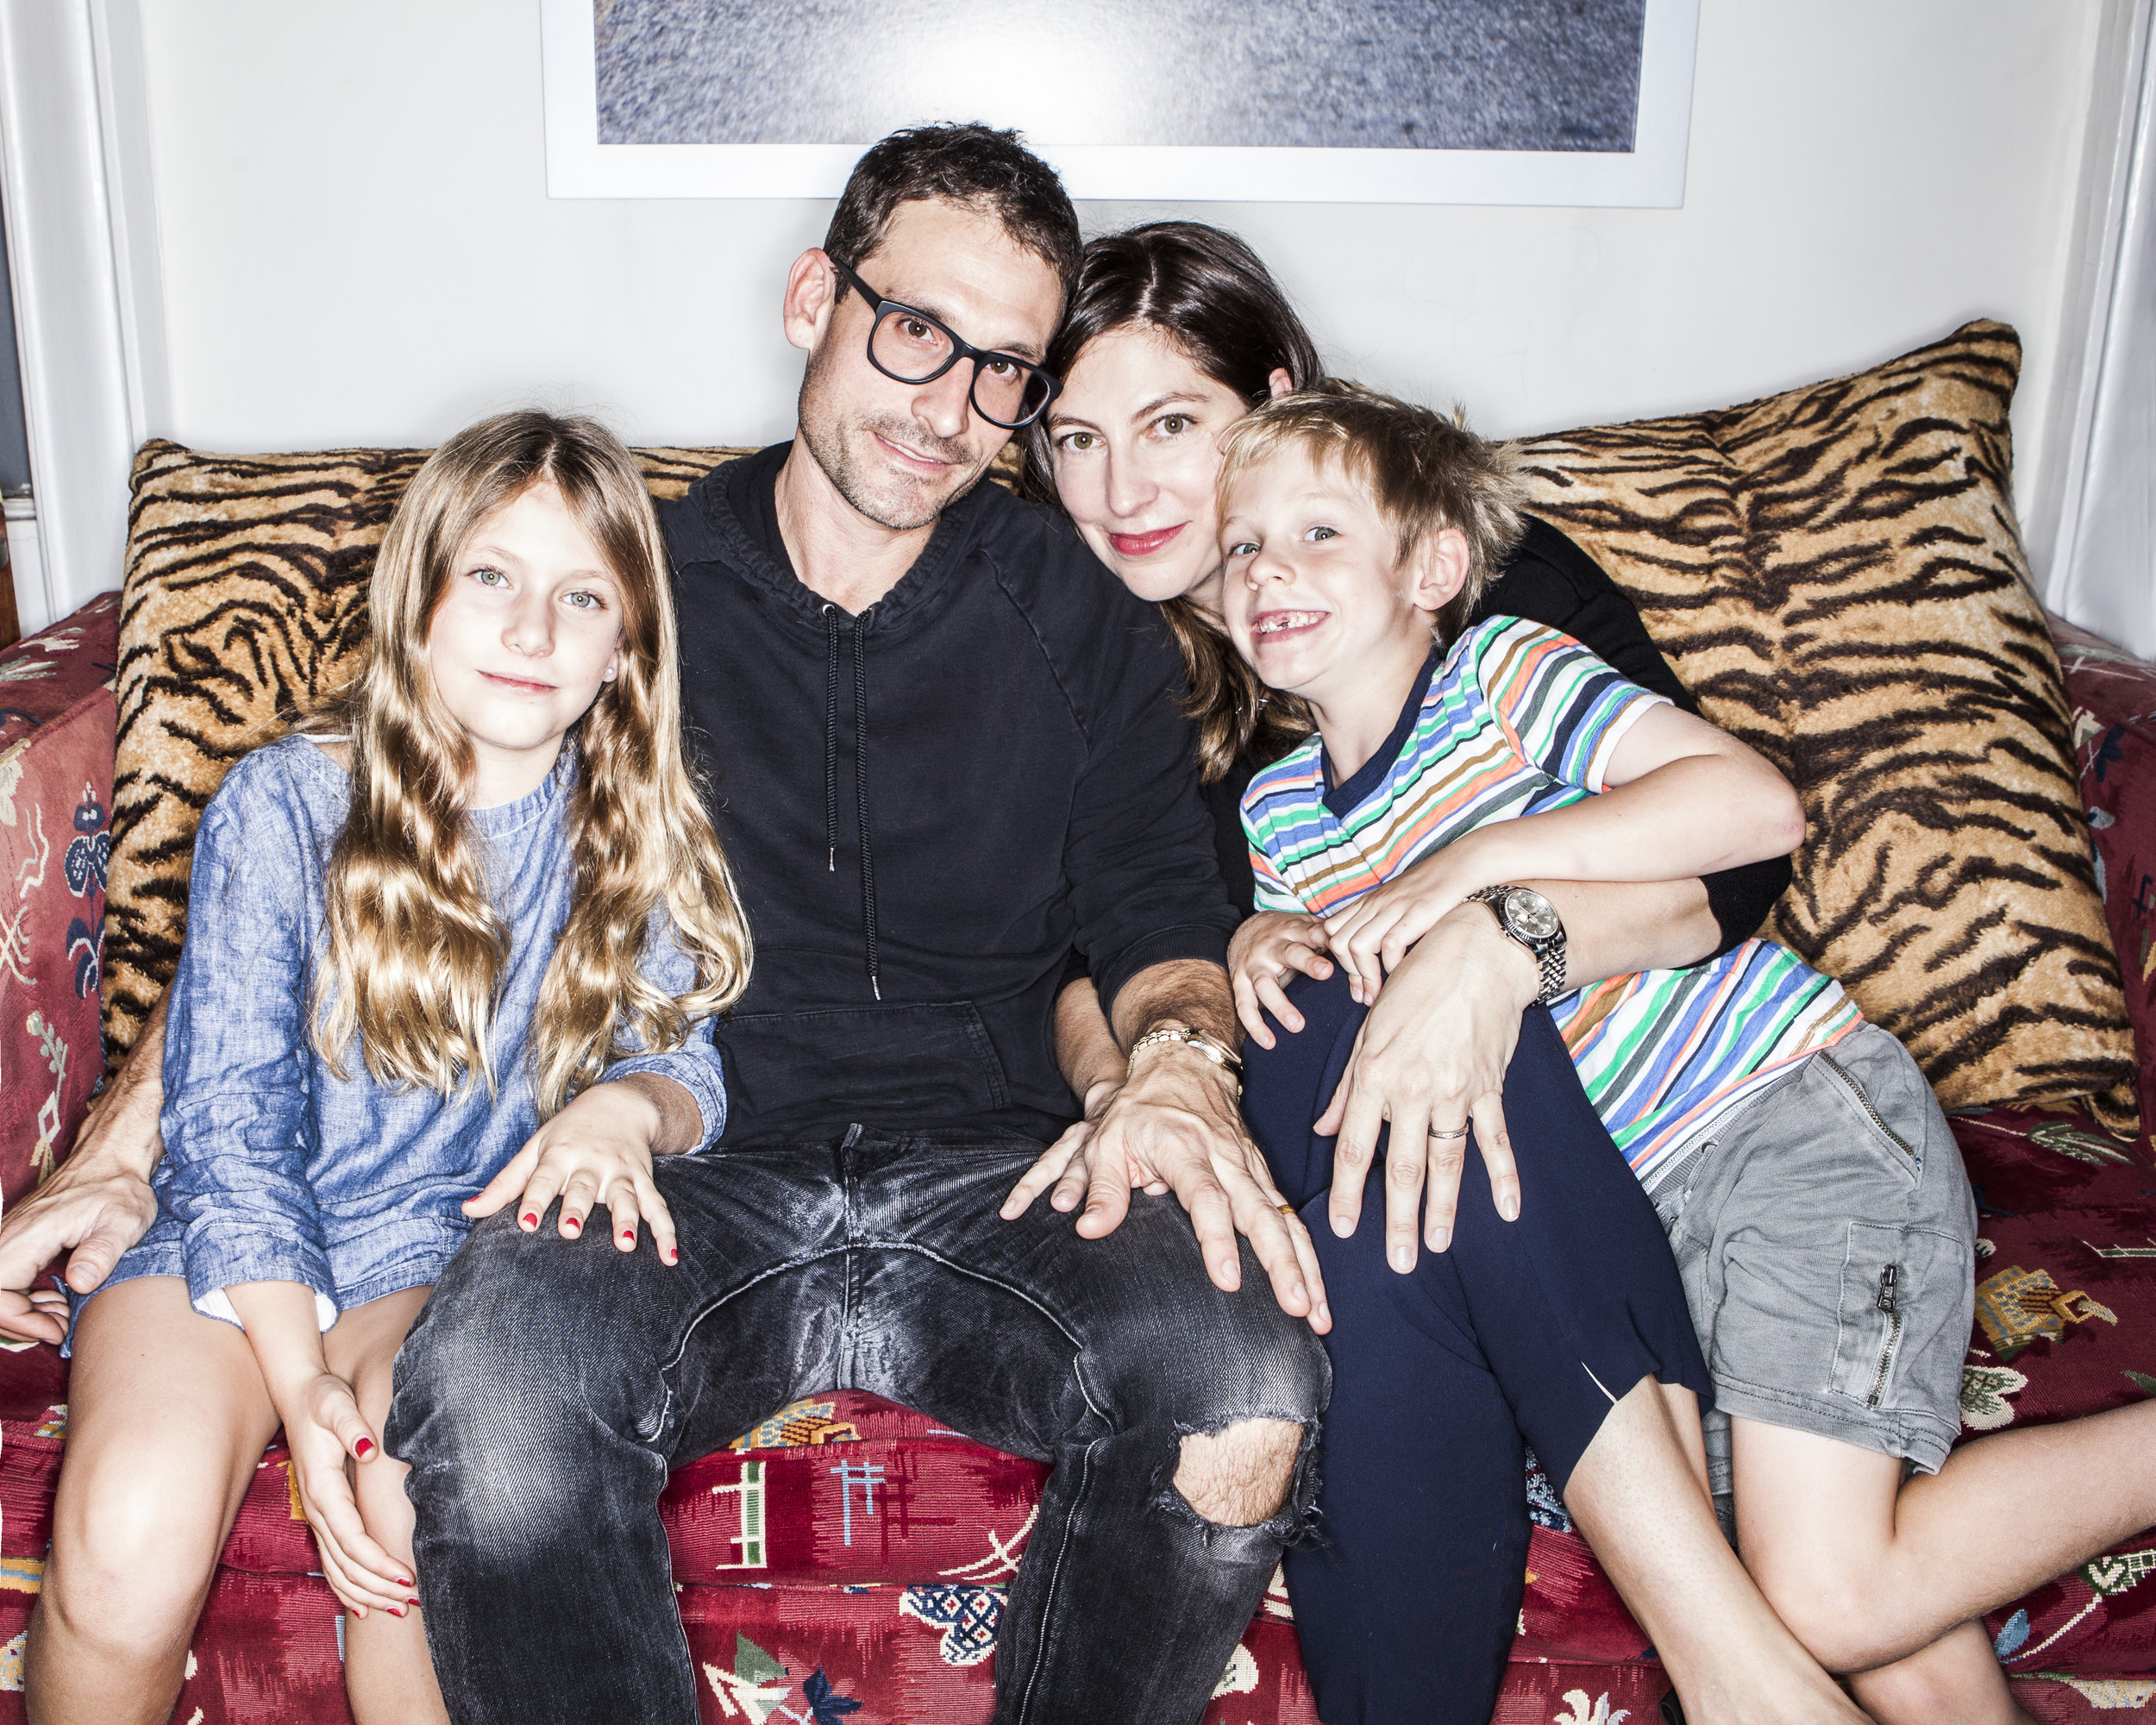 Sasha and her family, photographed by Sharon Suh